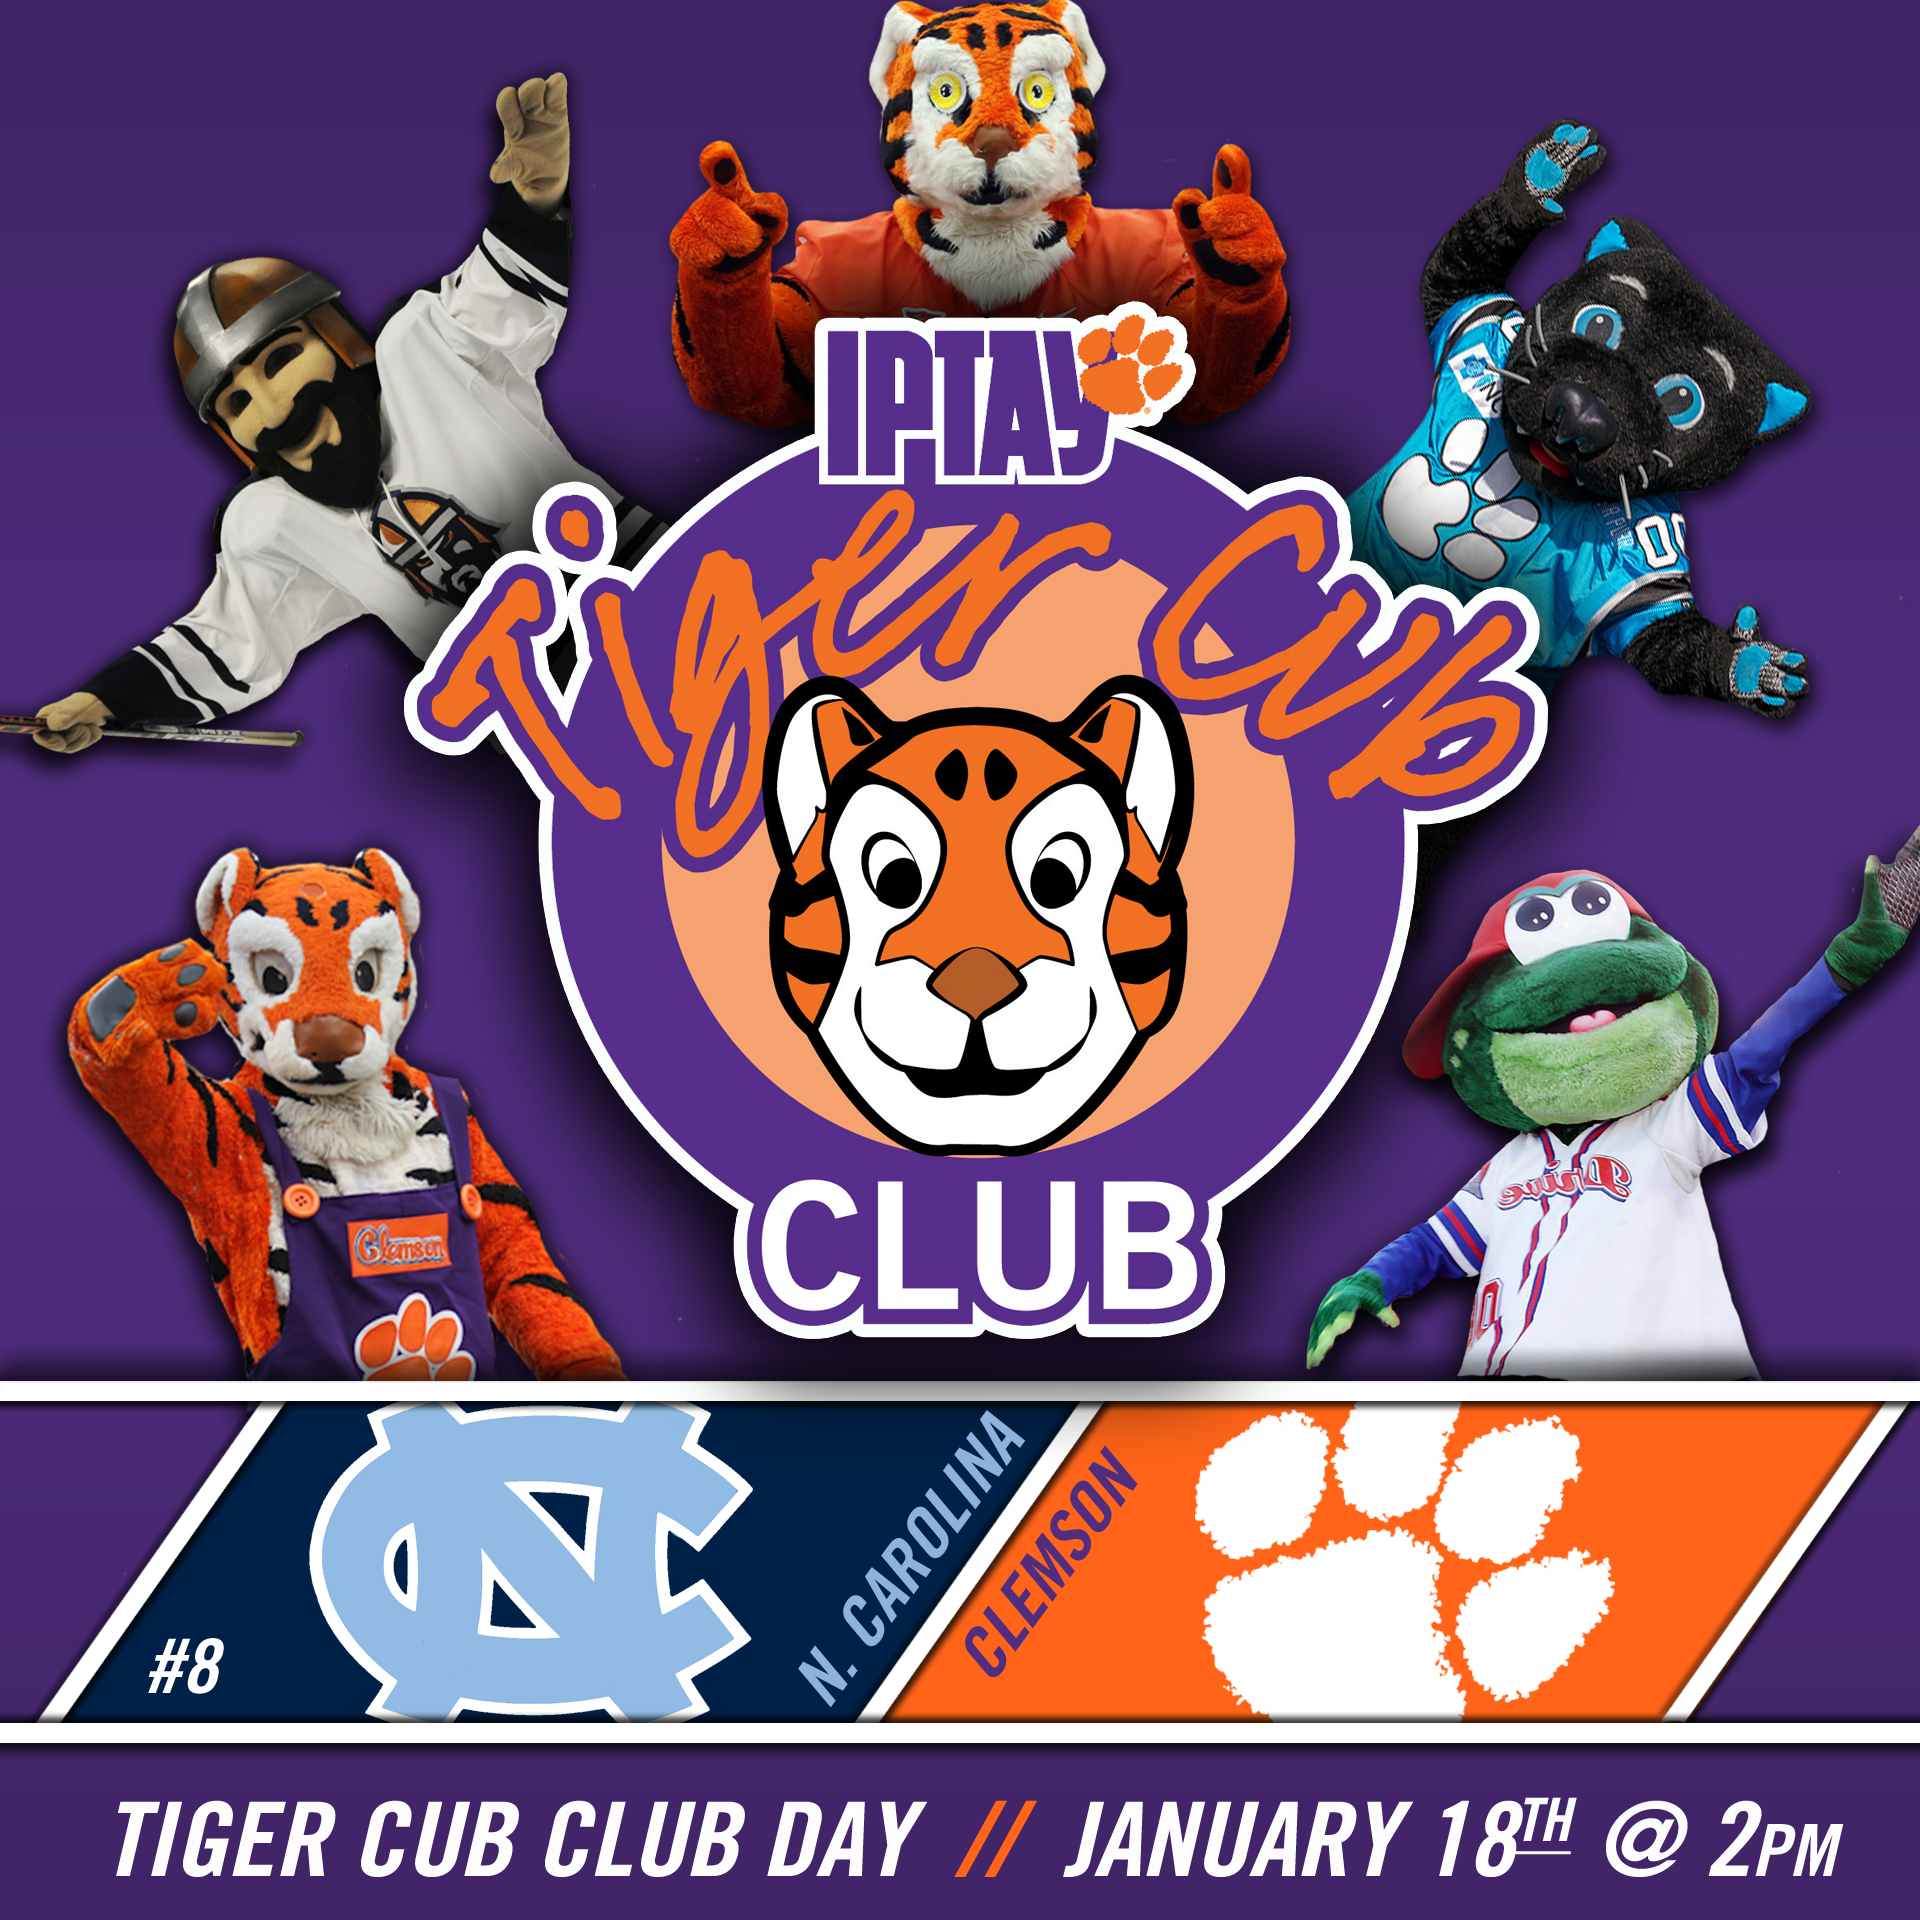 Tiger Cub Club/CATS Day at Women's Basketball: Sunday, January 18